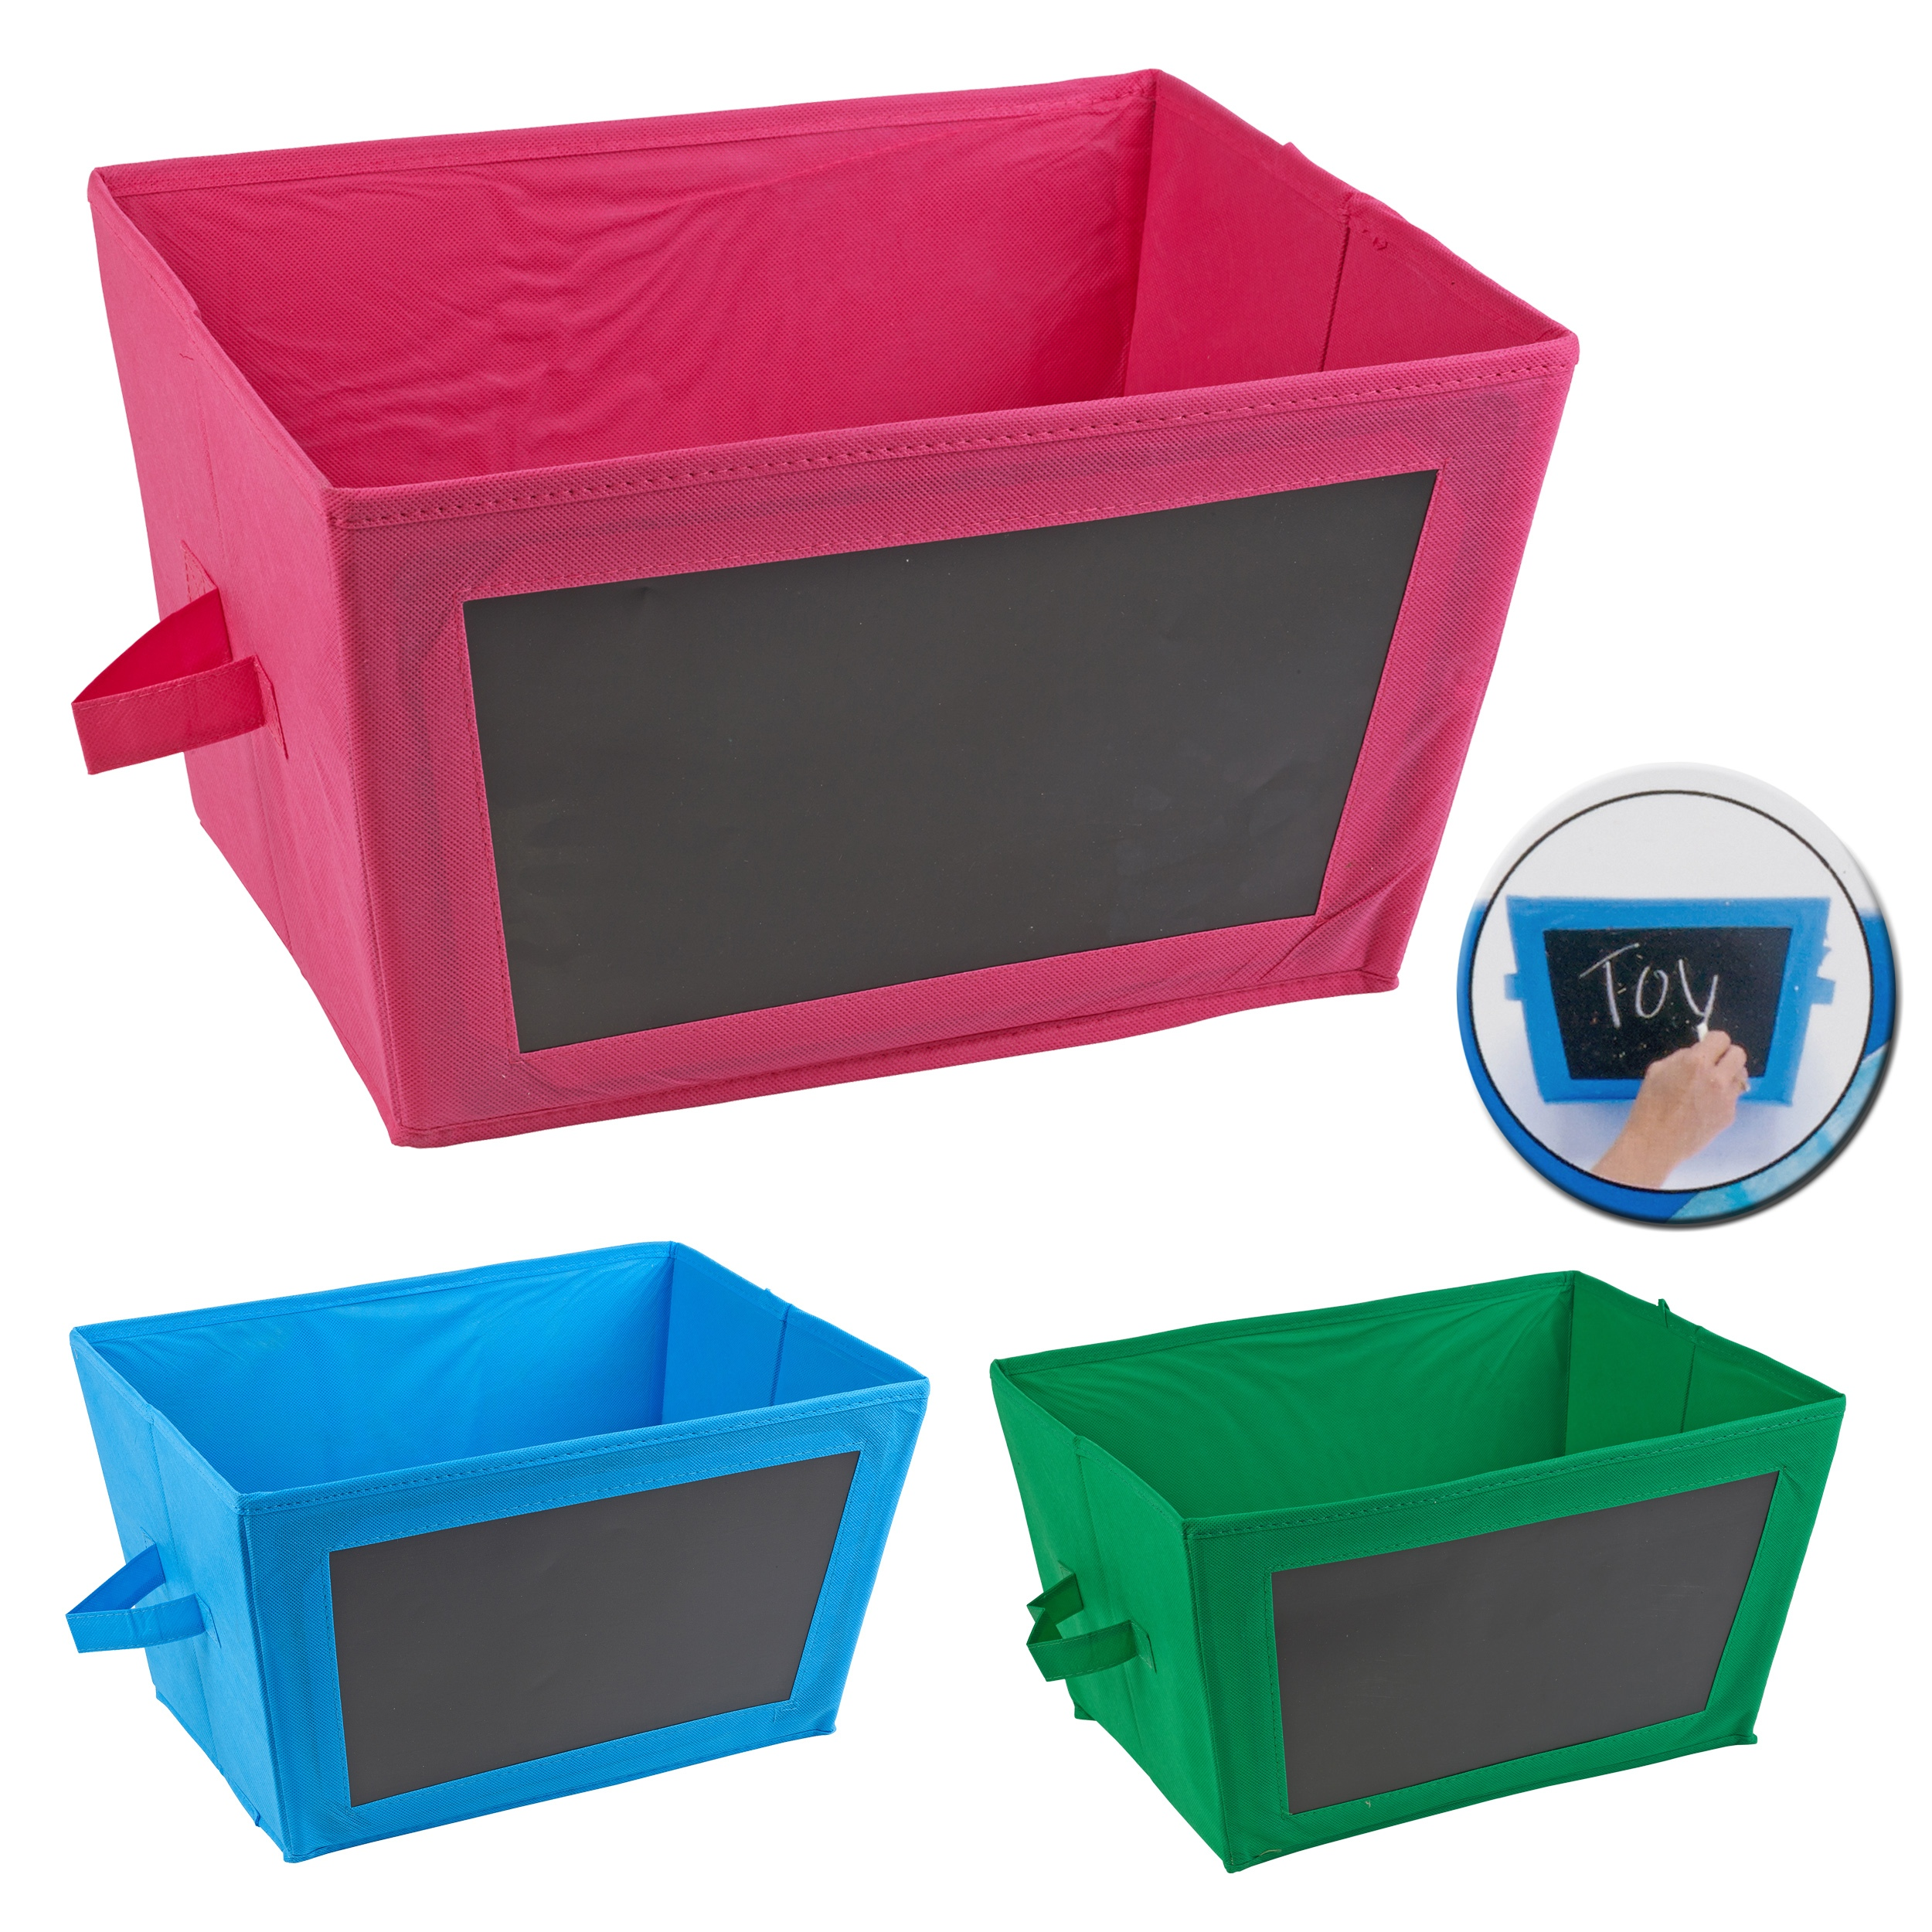 Collapsible Fabric Storage Boxes Chalkboard Side Containers Bits Bobs .